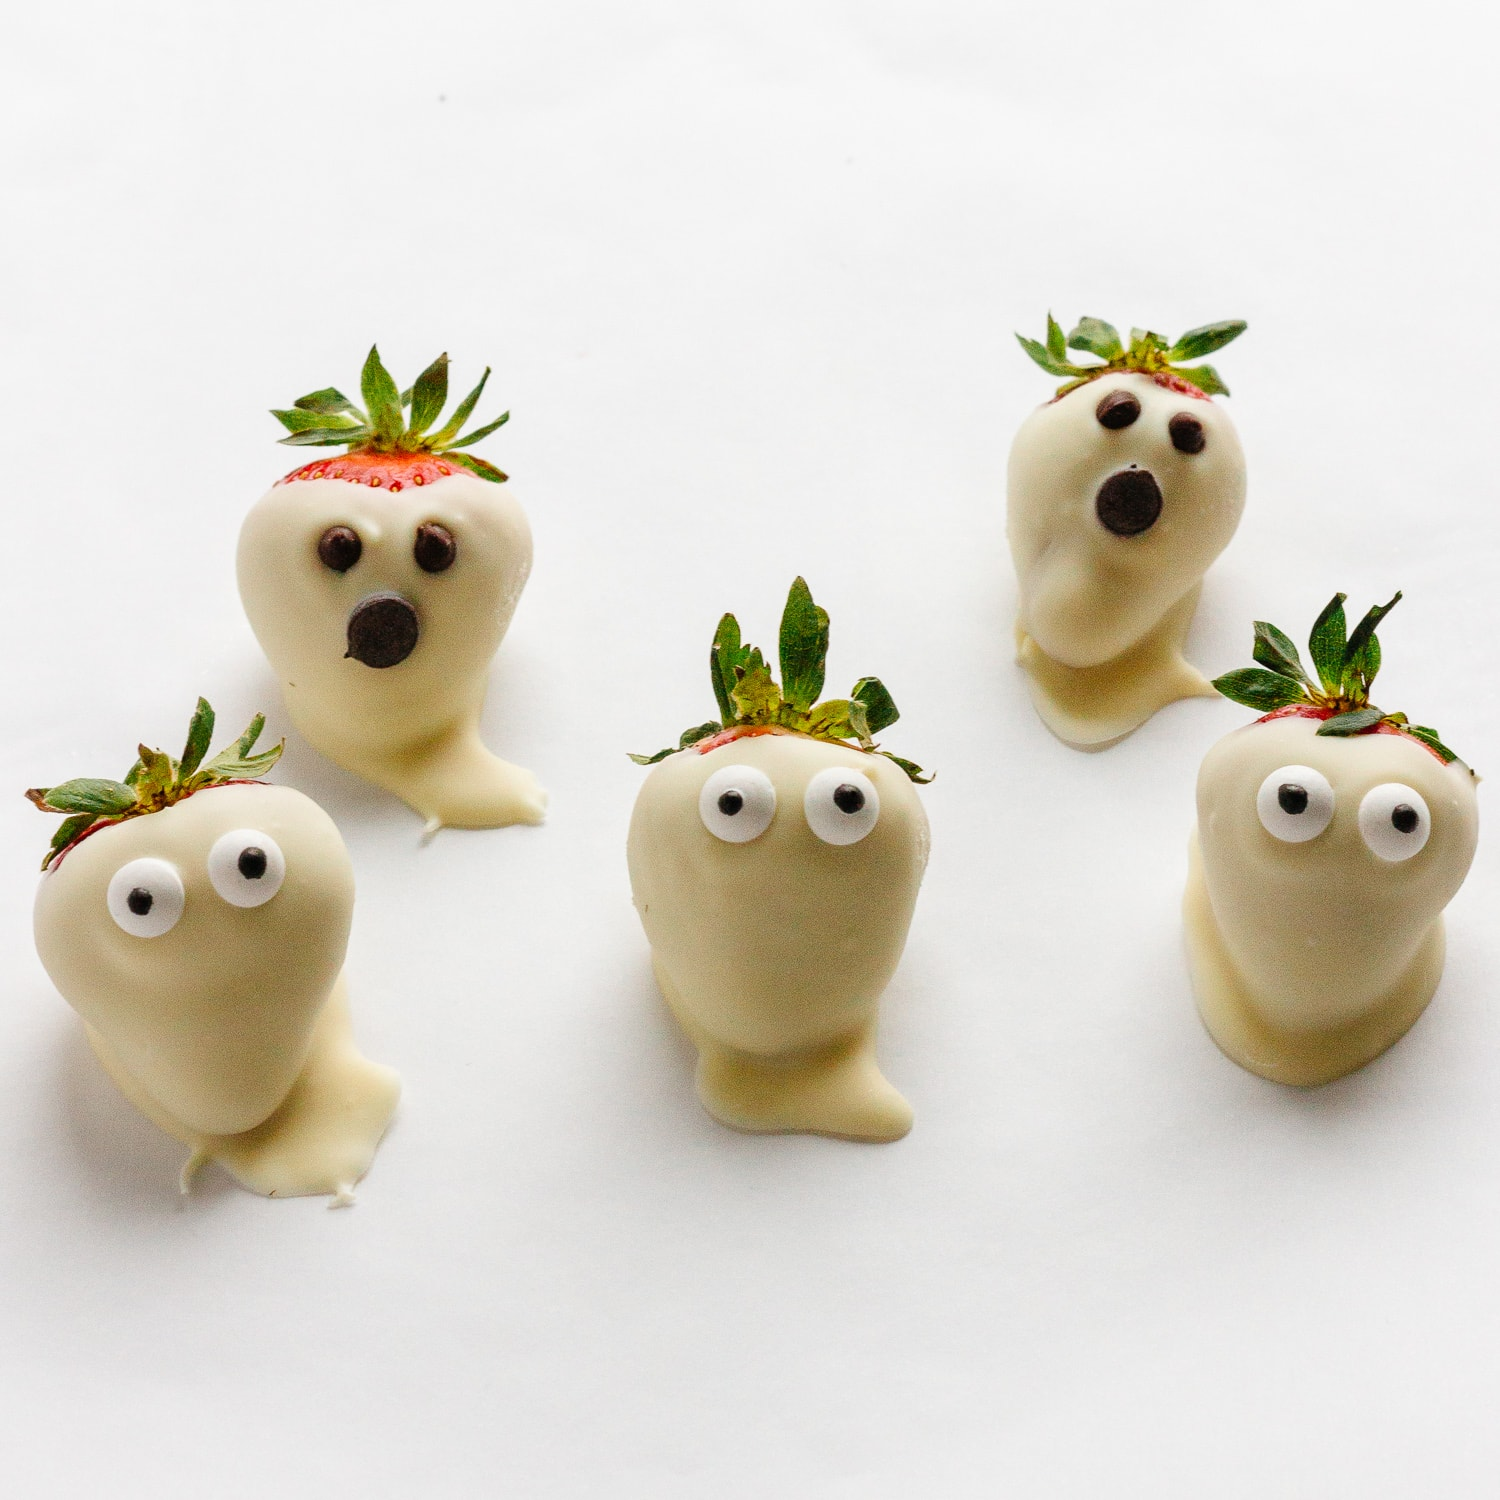 5 strawberry ghosts on a white surface.  Strawberries dipped in white chocolate with either candy eyeballs or chocolate chips.